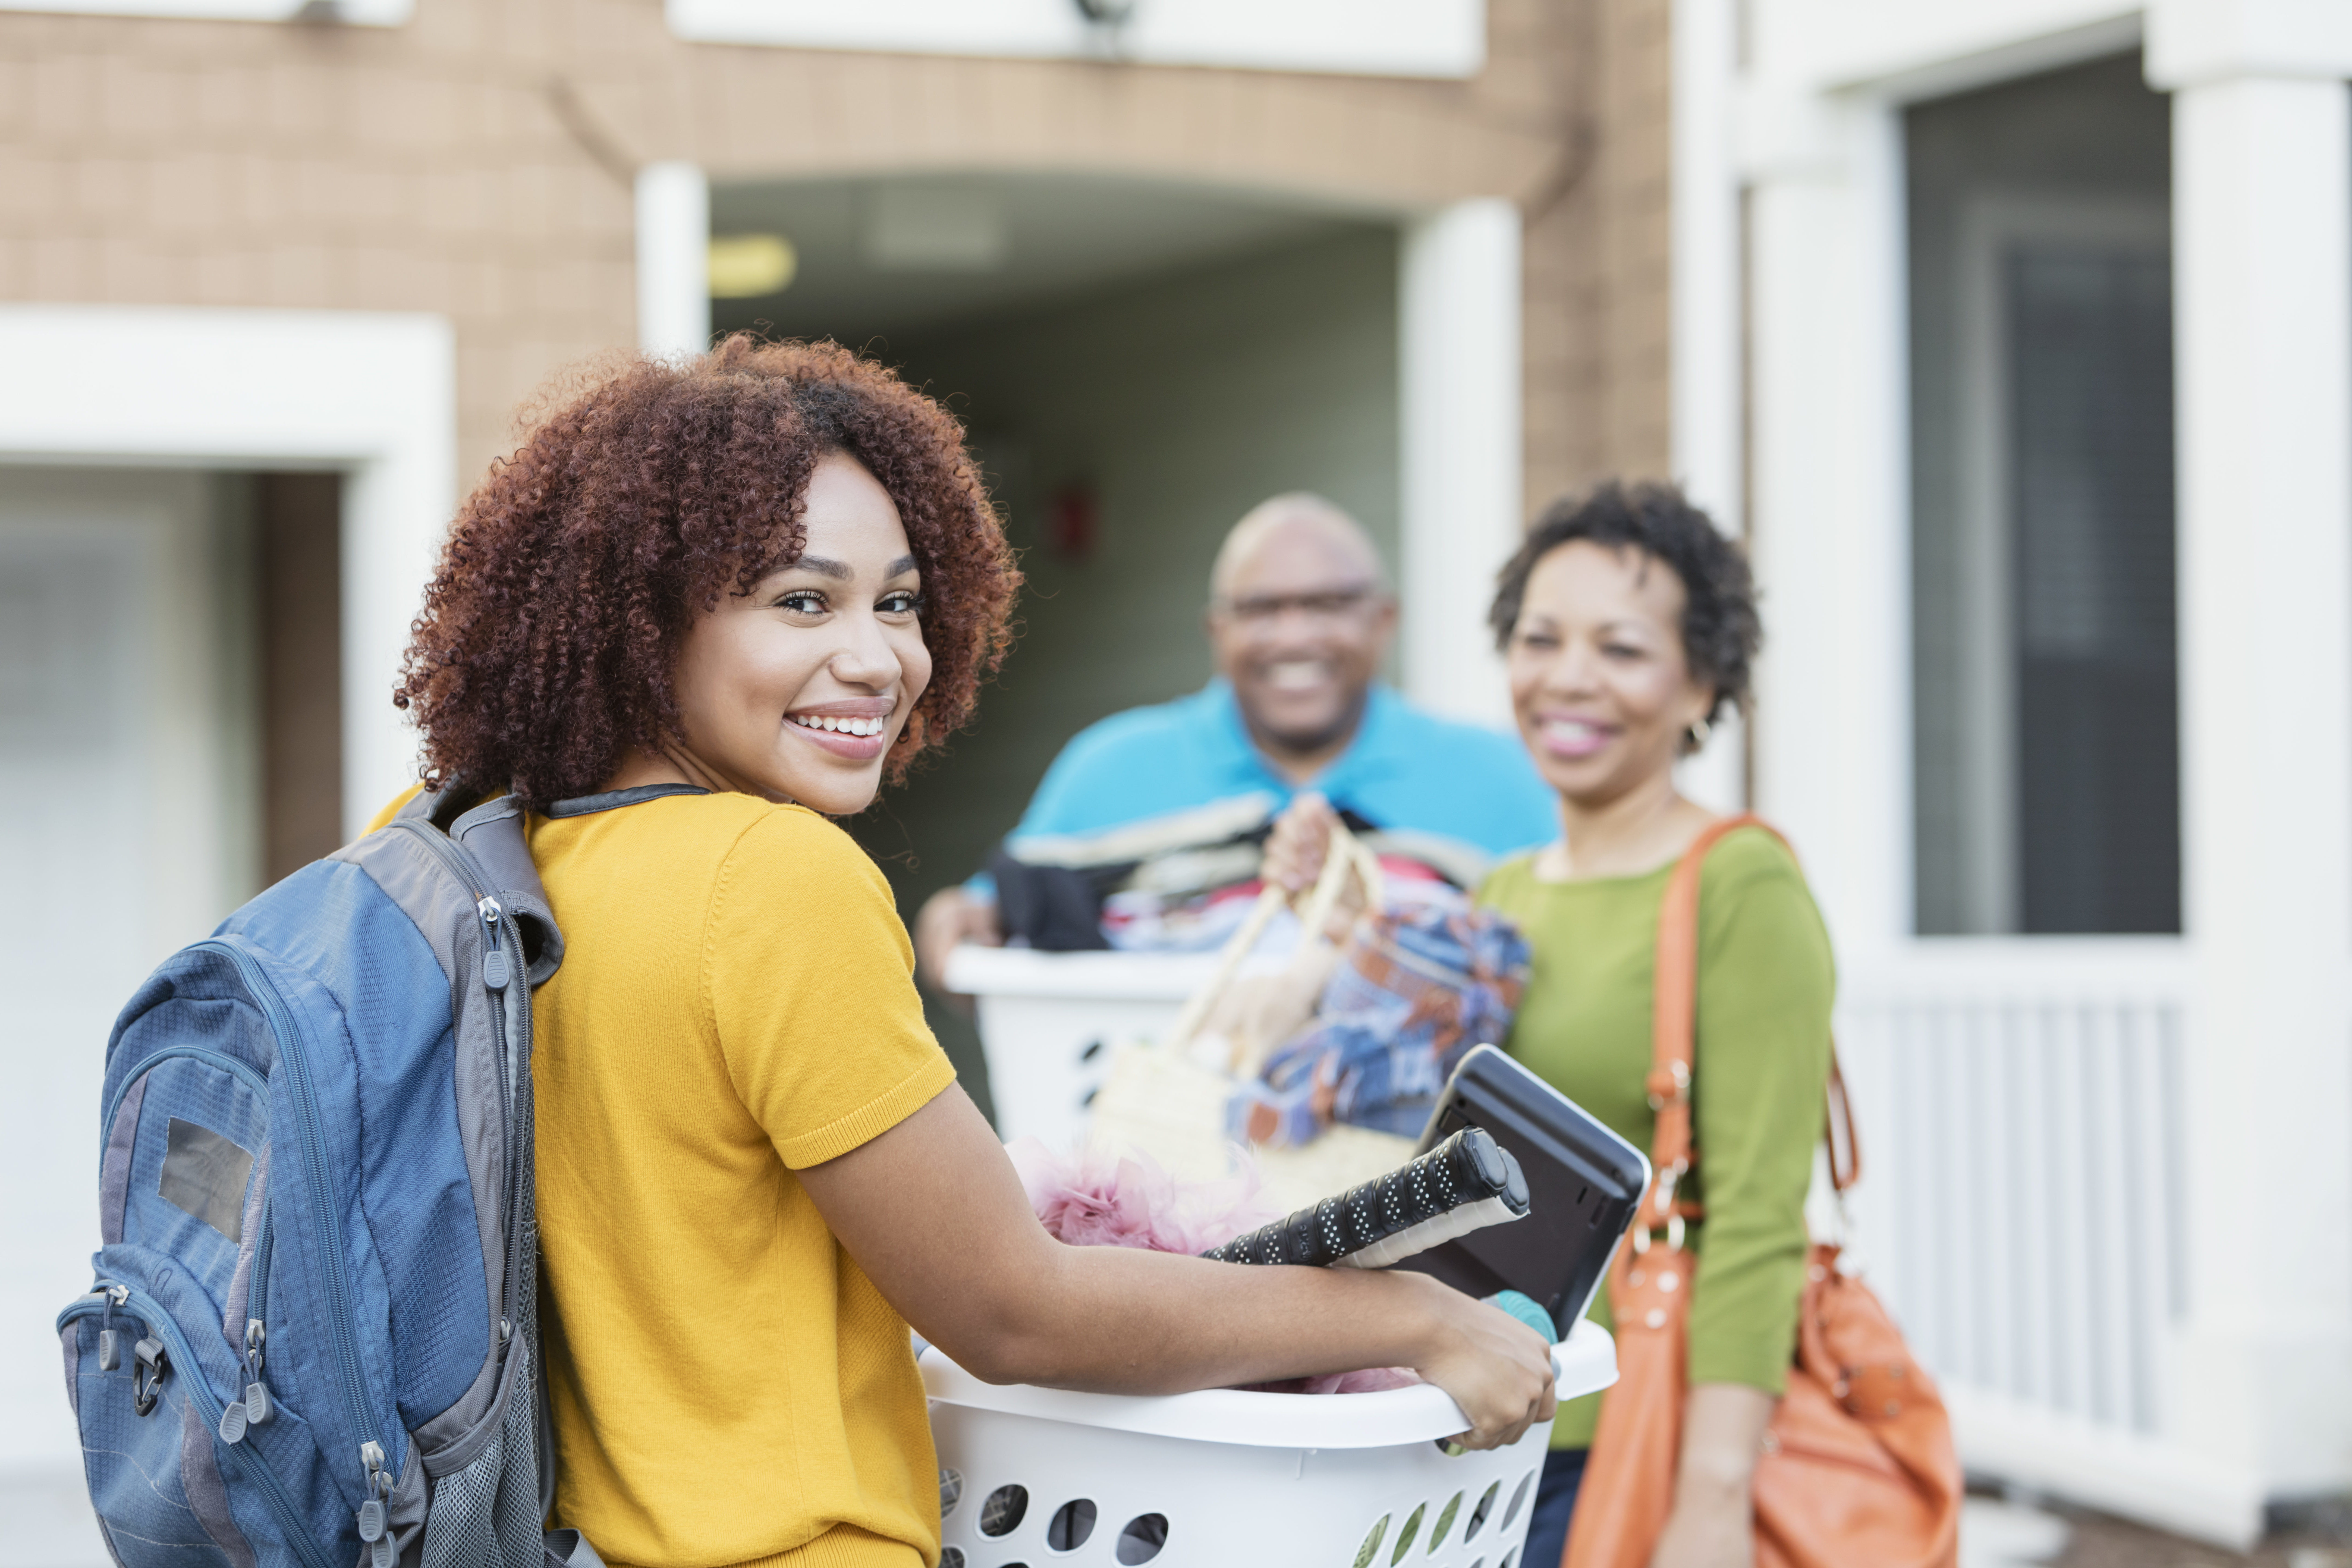 Female student moves in to a residence hall